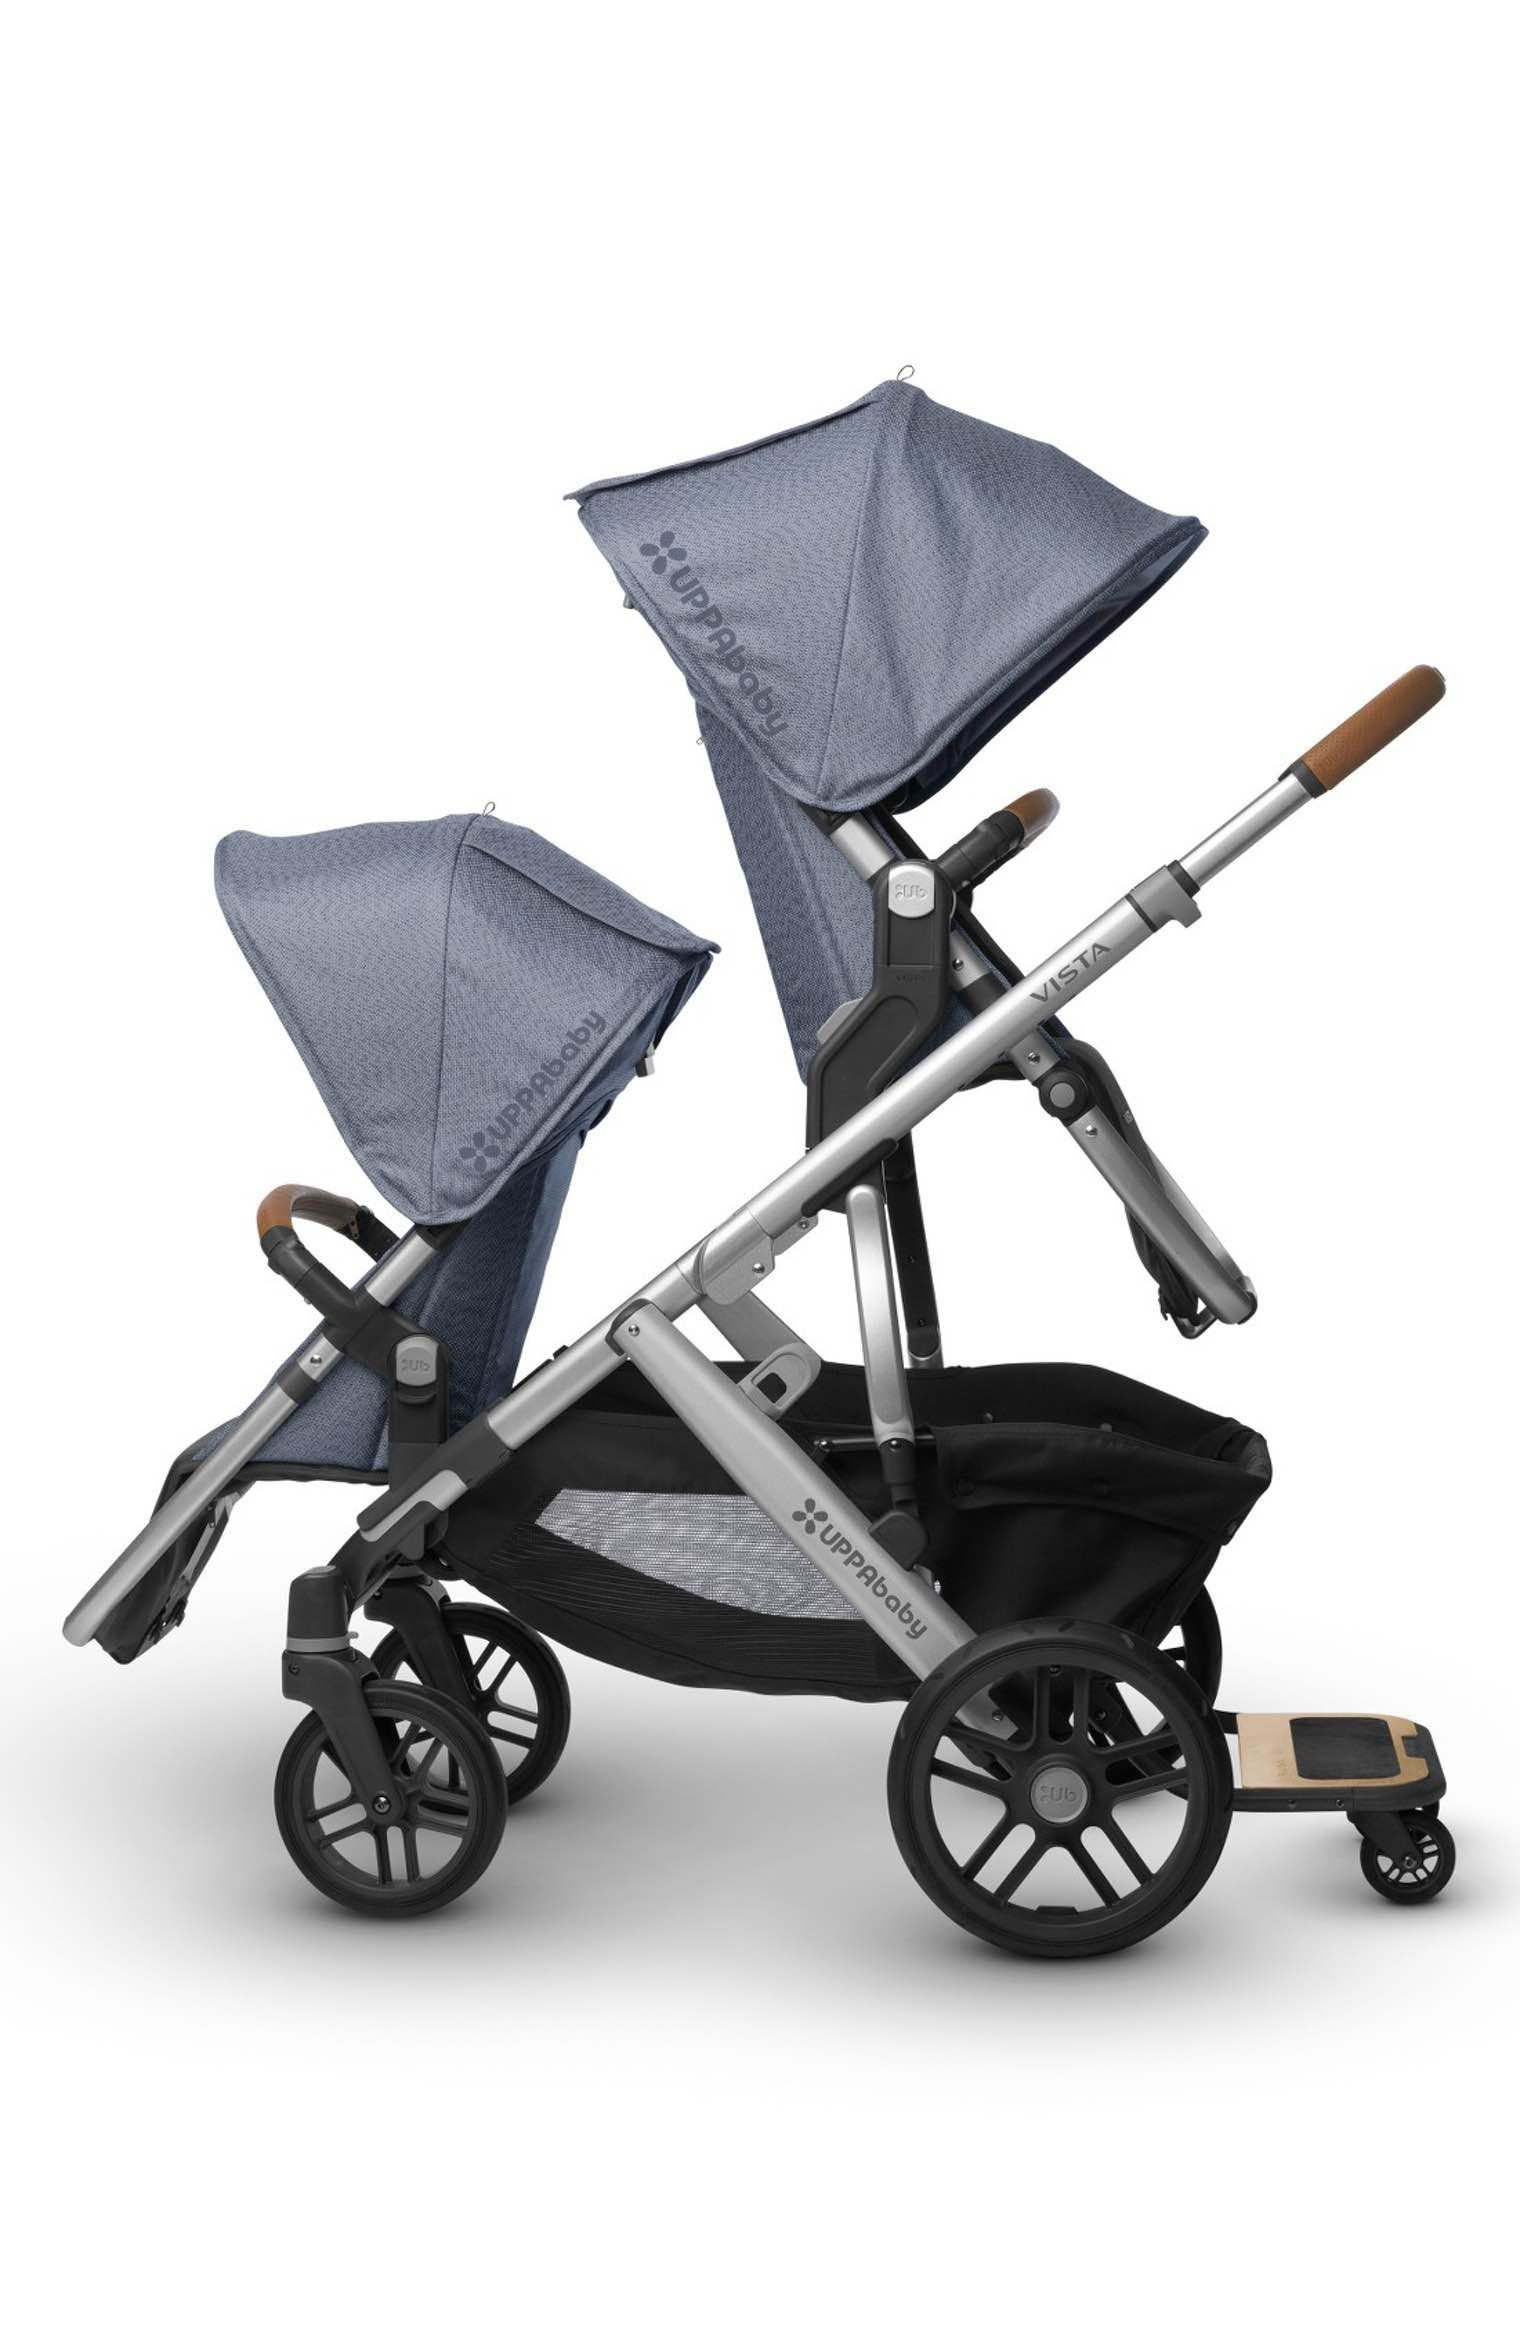 UPPAbaby 2017 VISTA Henry Aluminum Frame Convertible Stroller with Bassinet & Toddler Seat $899 99 Free Shipping